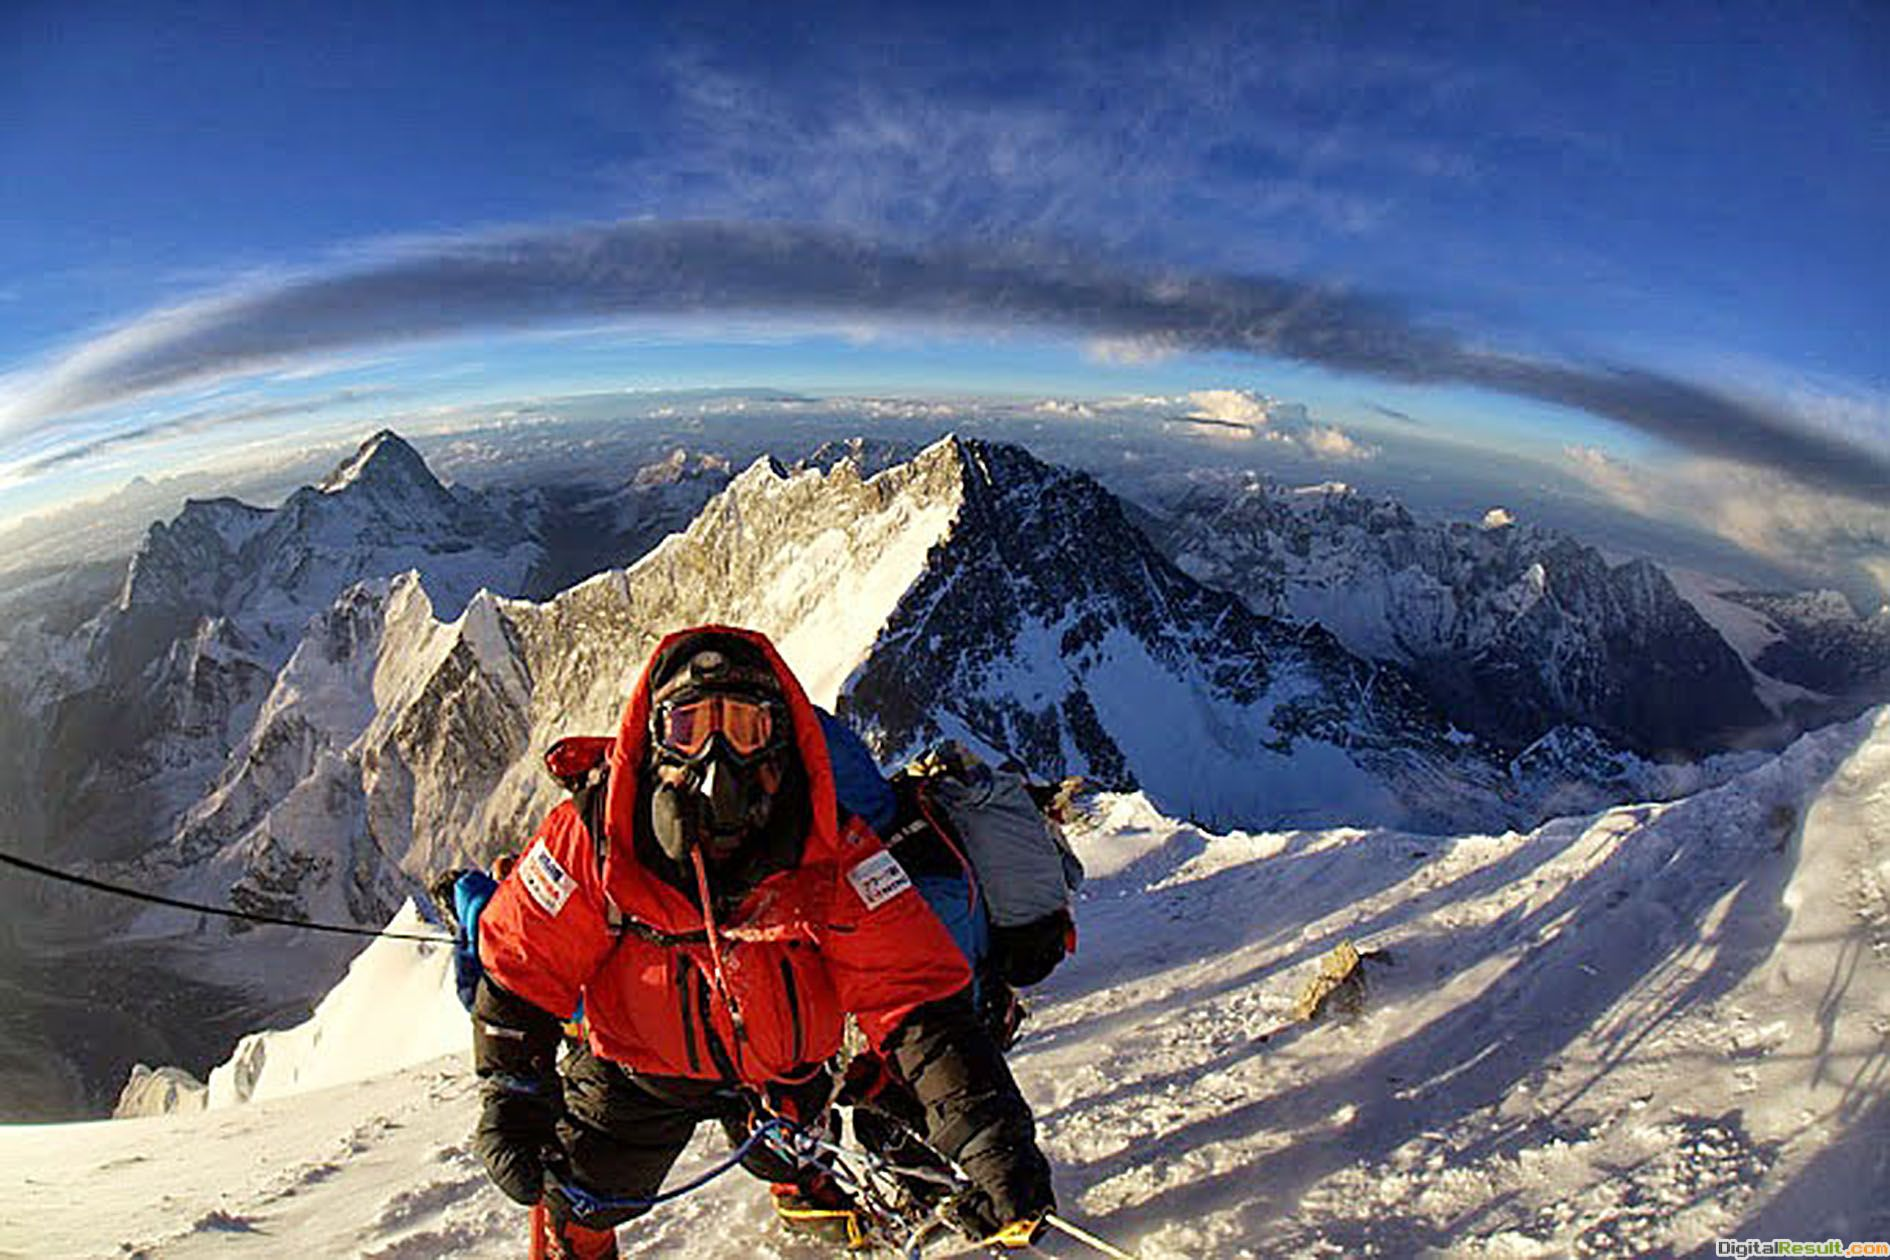 Recommended: Everest Backgrounds November 27, 2013, Andrea Kaul